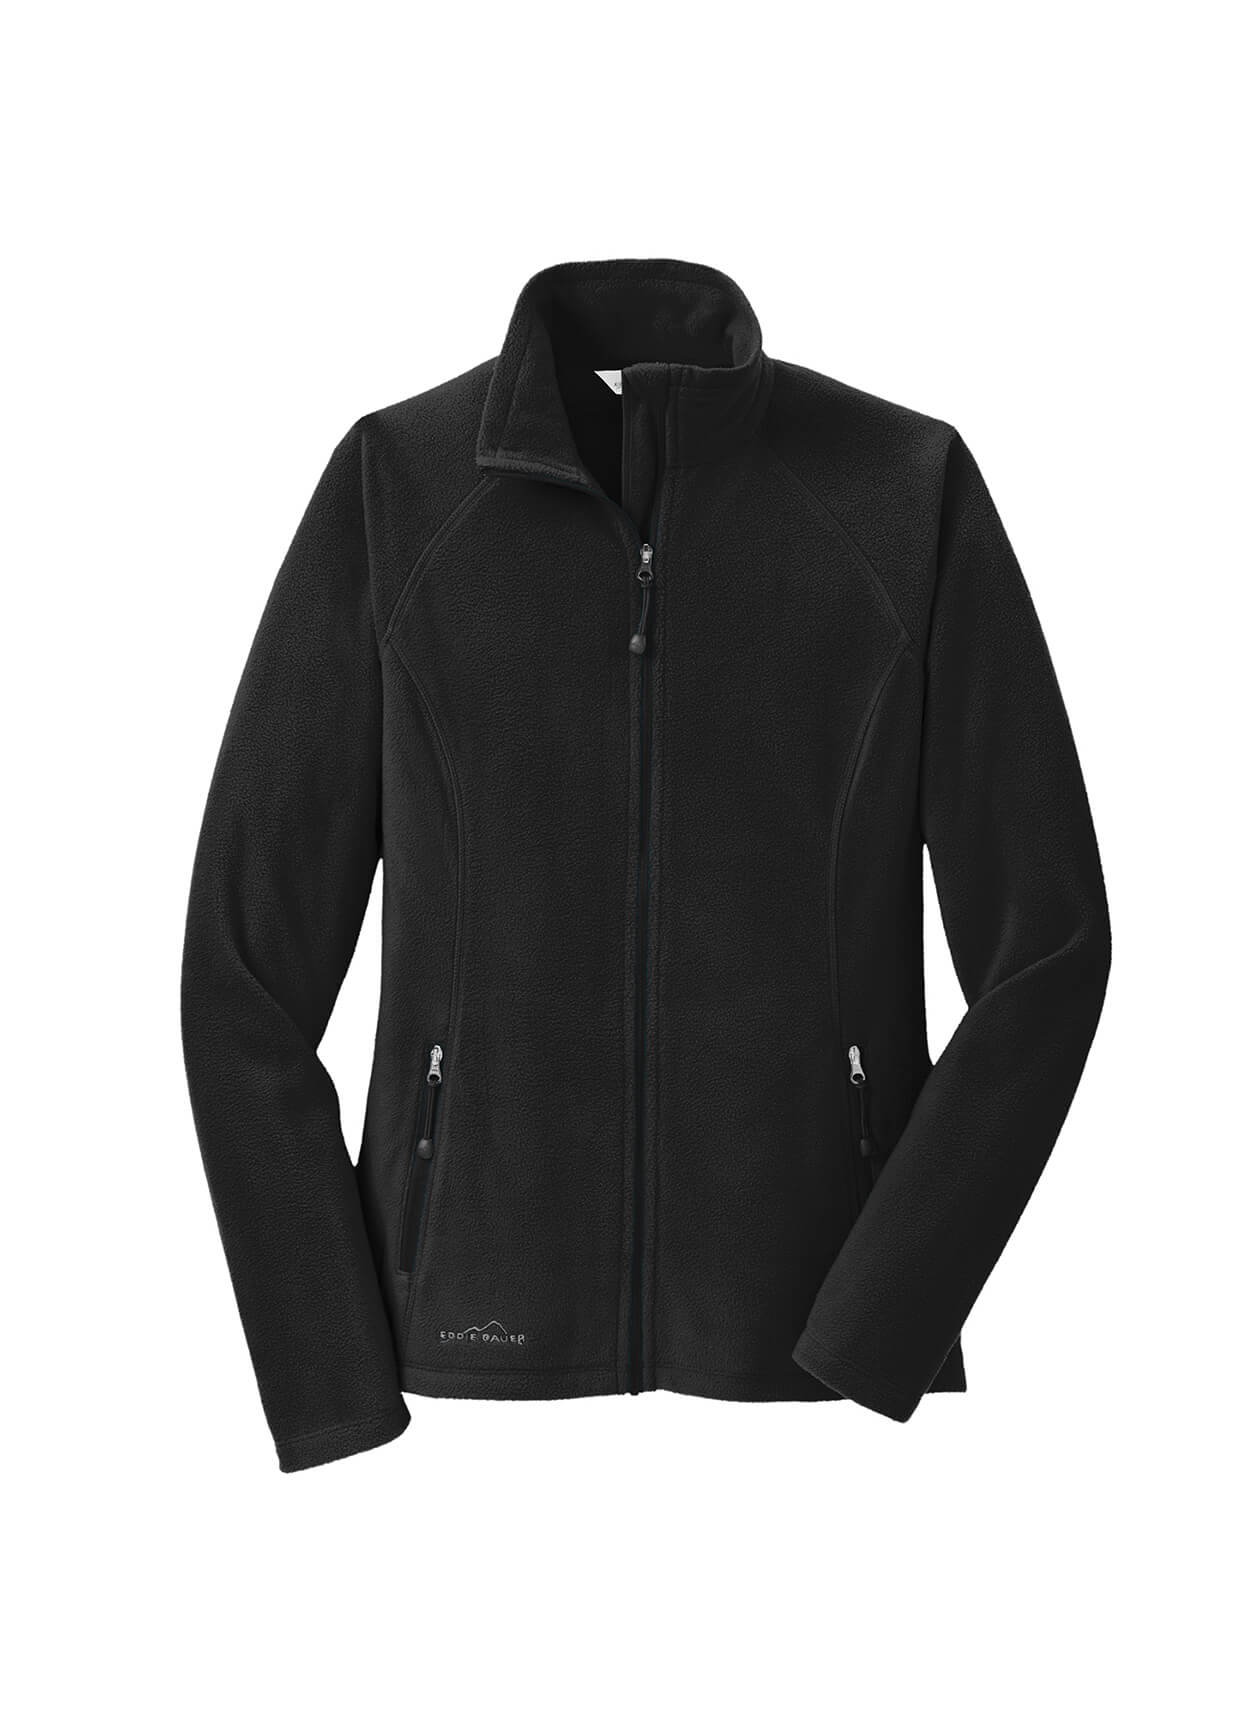 Eddie Bauer Women's Full-Zip Microfleece Jacket